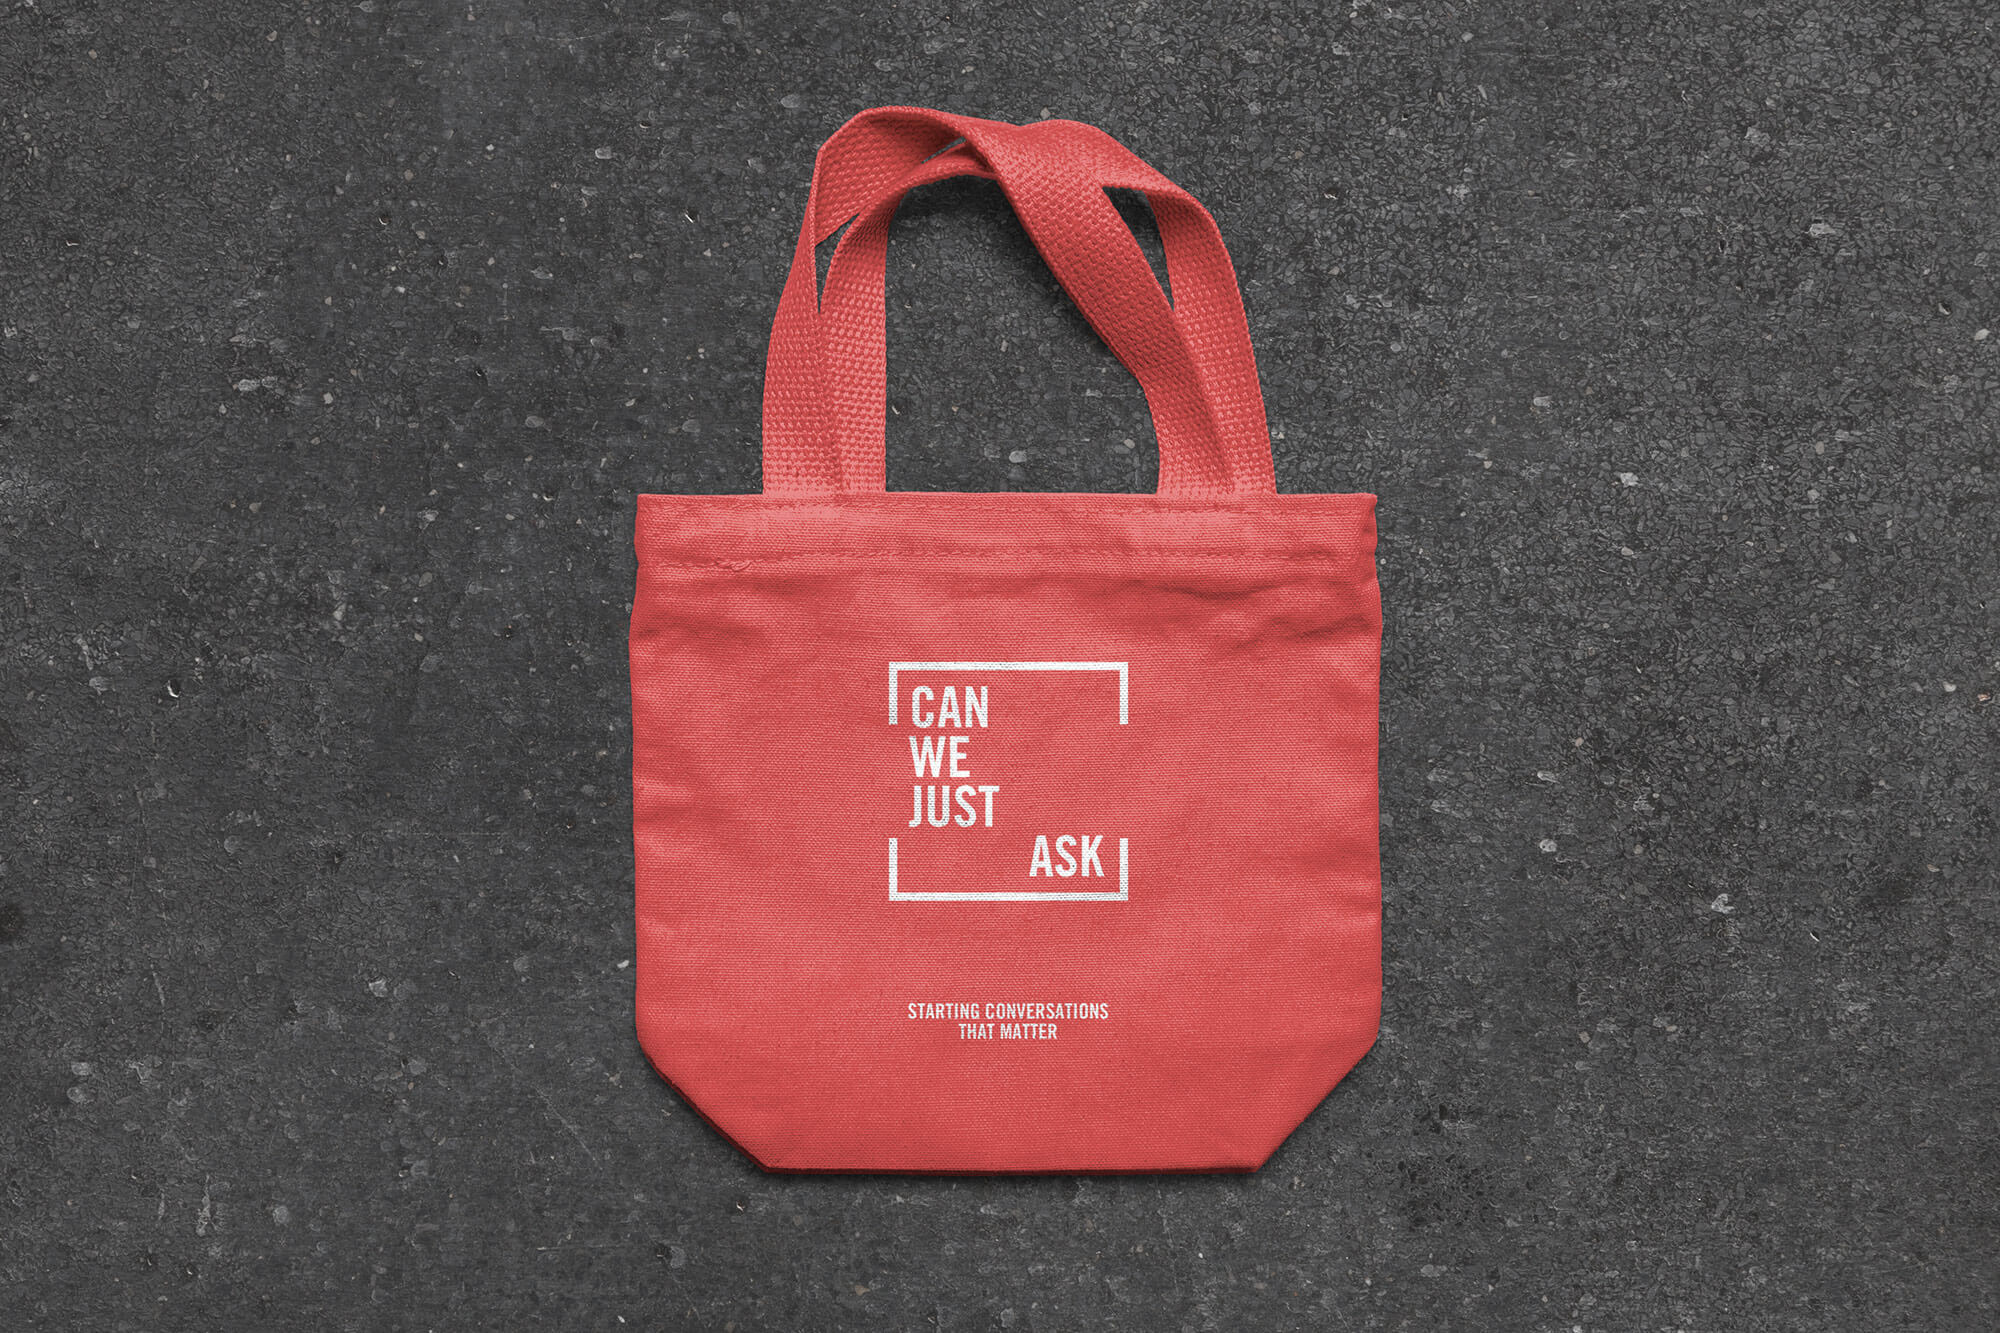 gpj-design-can-we-just-ask-brand-identity-cs-06